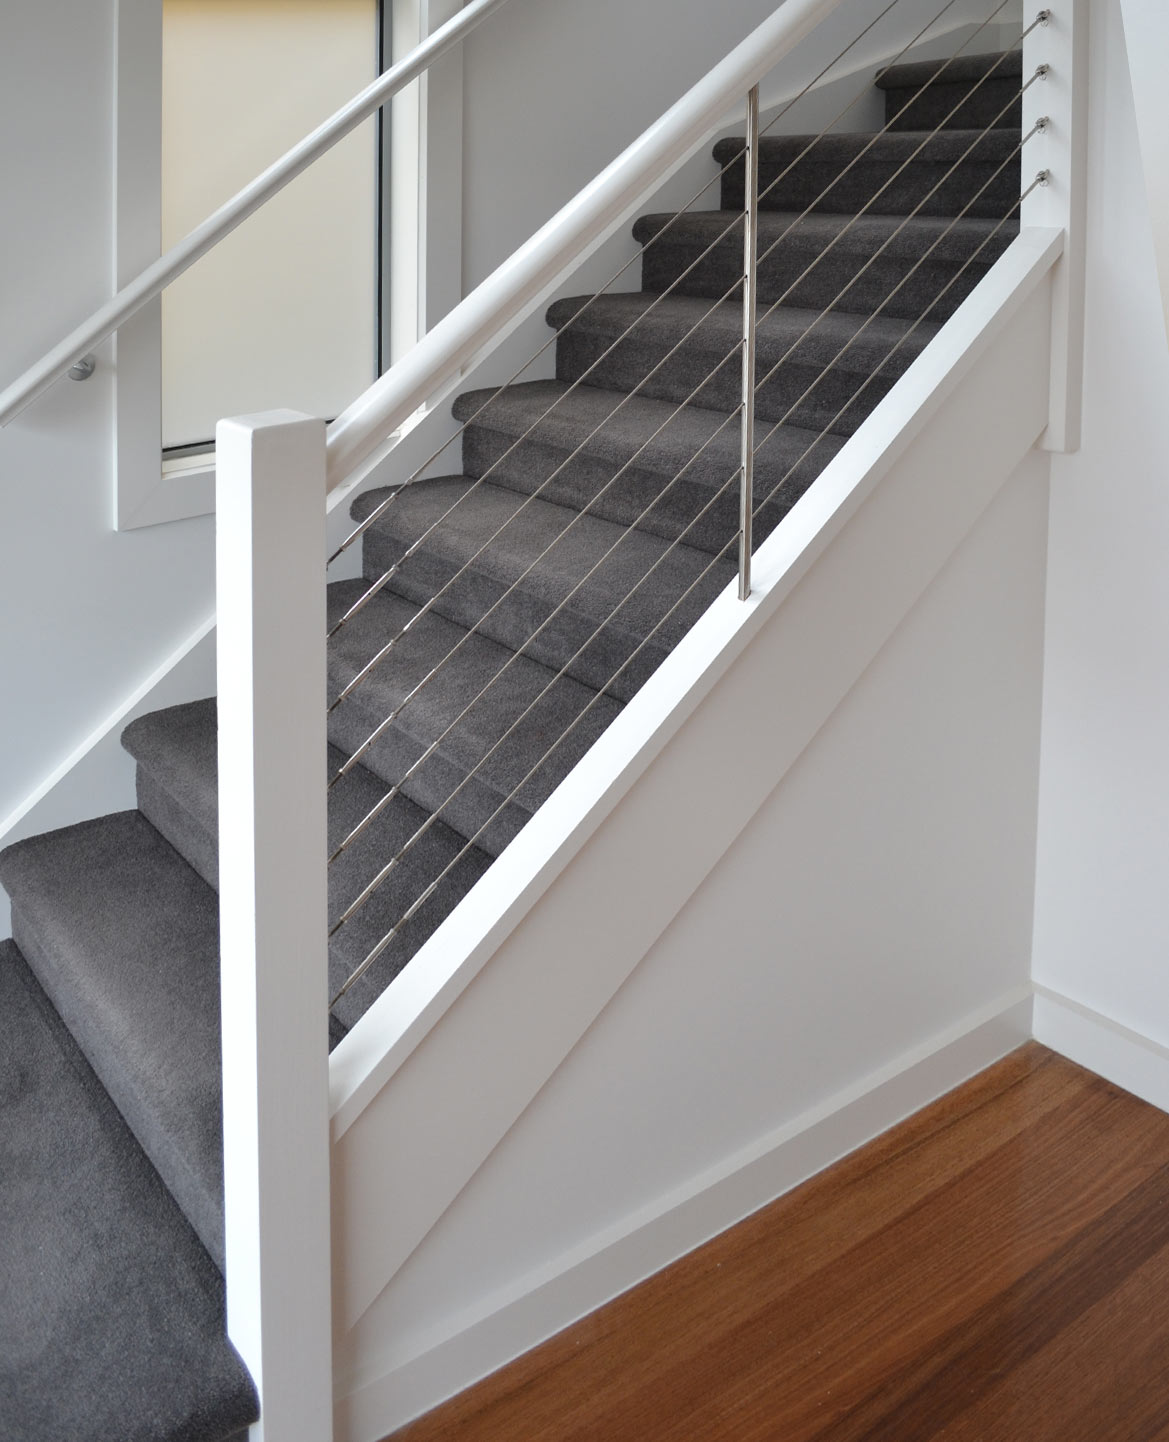 High Quality This Staircase Features An MDF Staircase With Pine Posts, Handrail And Wire  Balustrading.